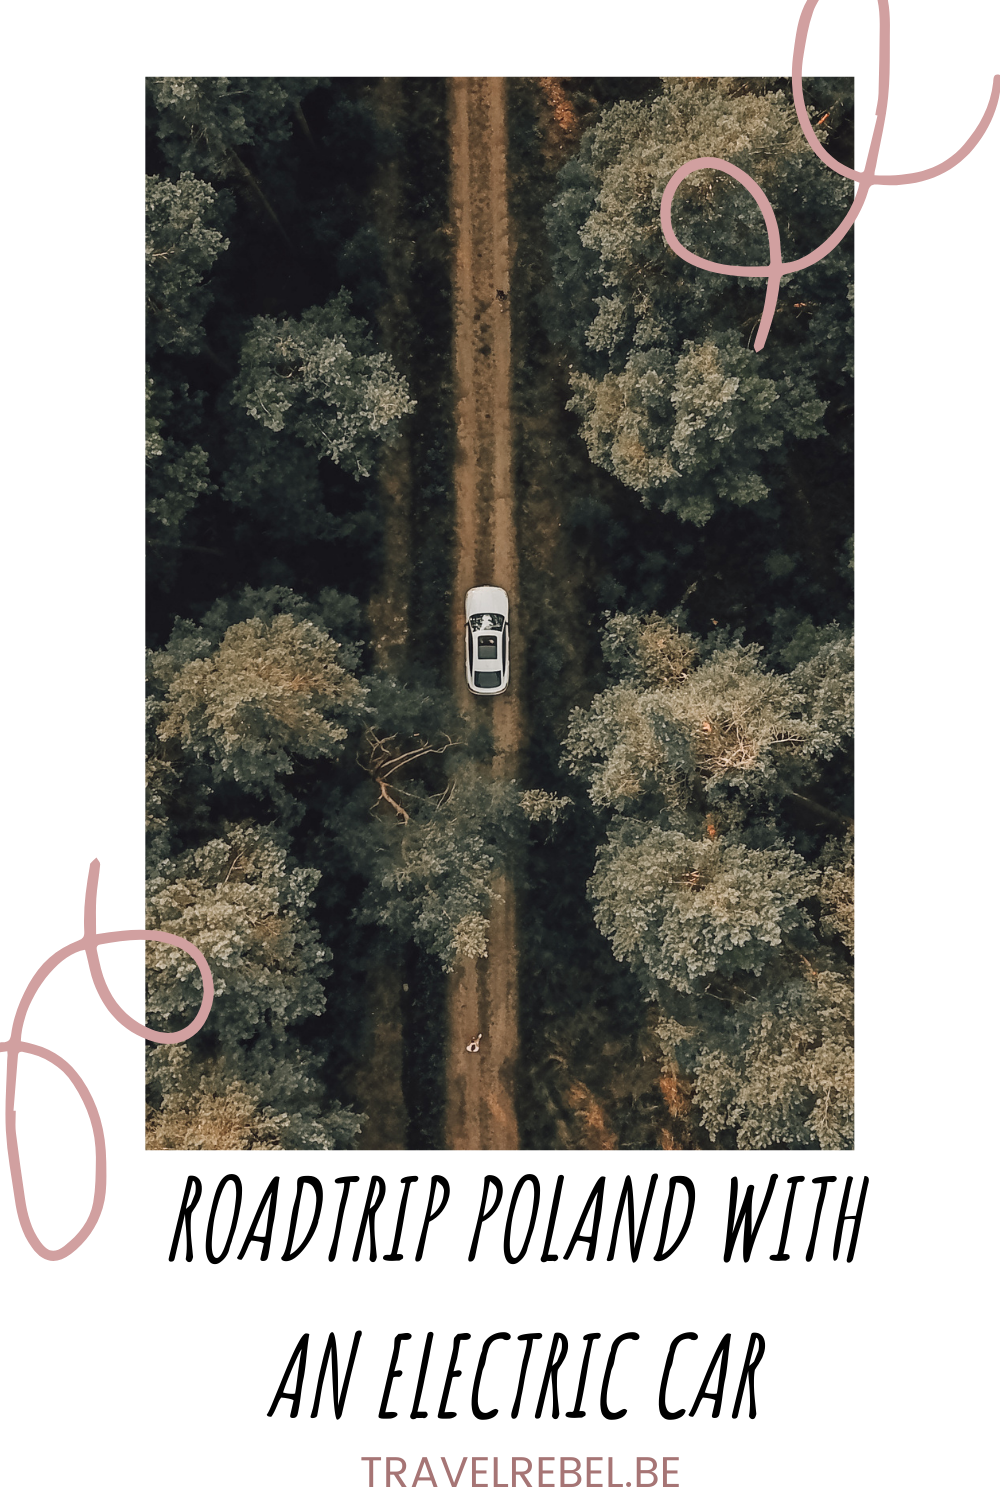 Roadtrip Poland with an electric car